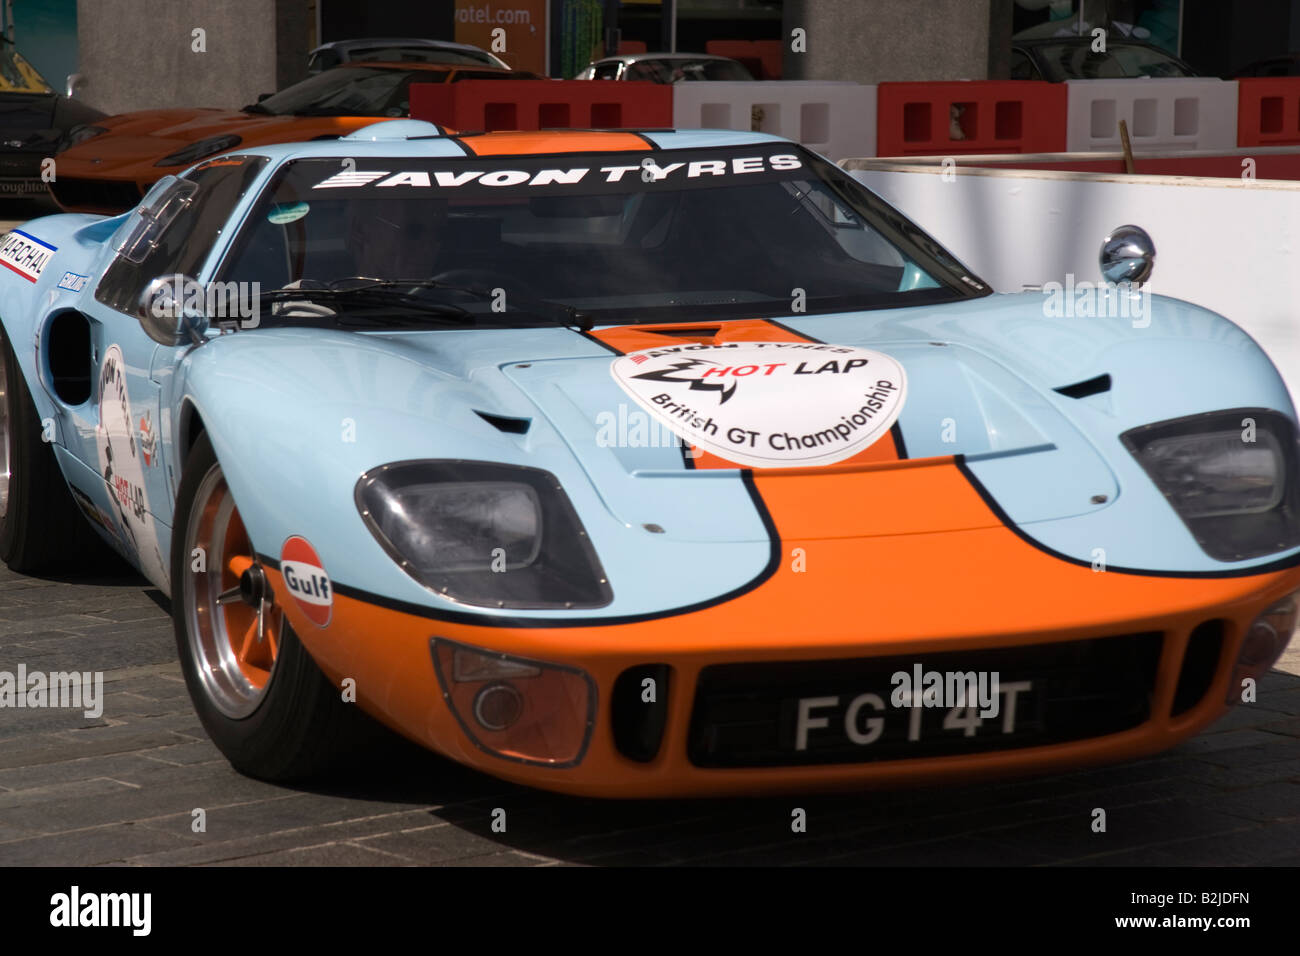 a blue and orange ford gt 40 racing car driving on a makeshift track stock photo royalty free. Black Bedroom Furniture Sets. Home Design Ideas